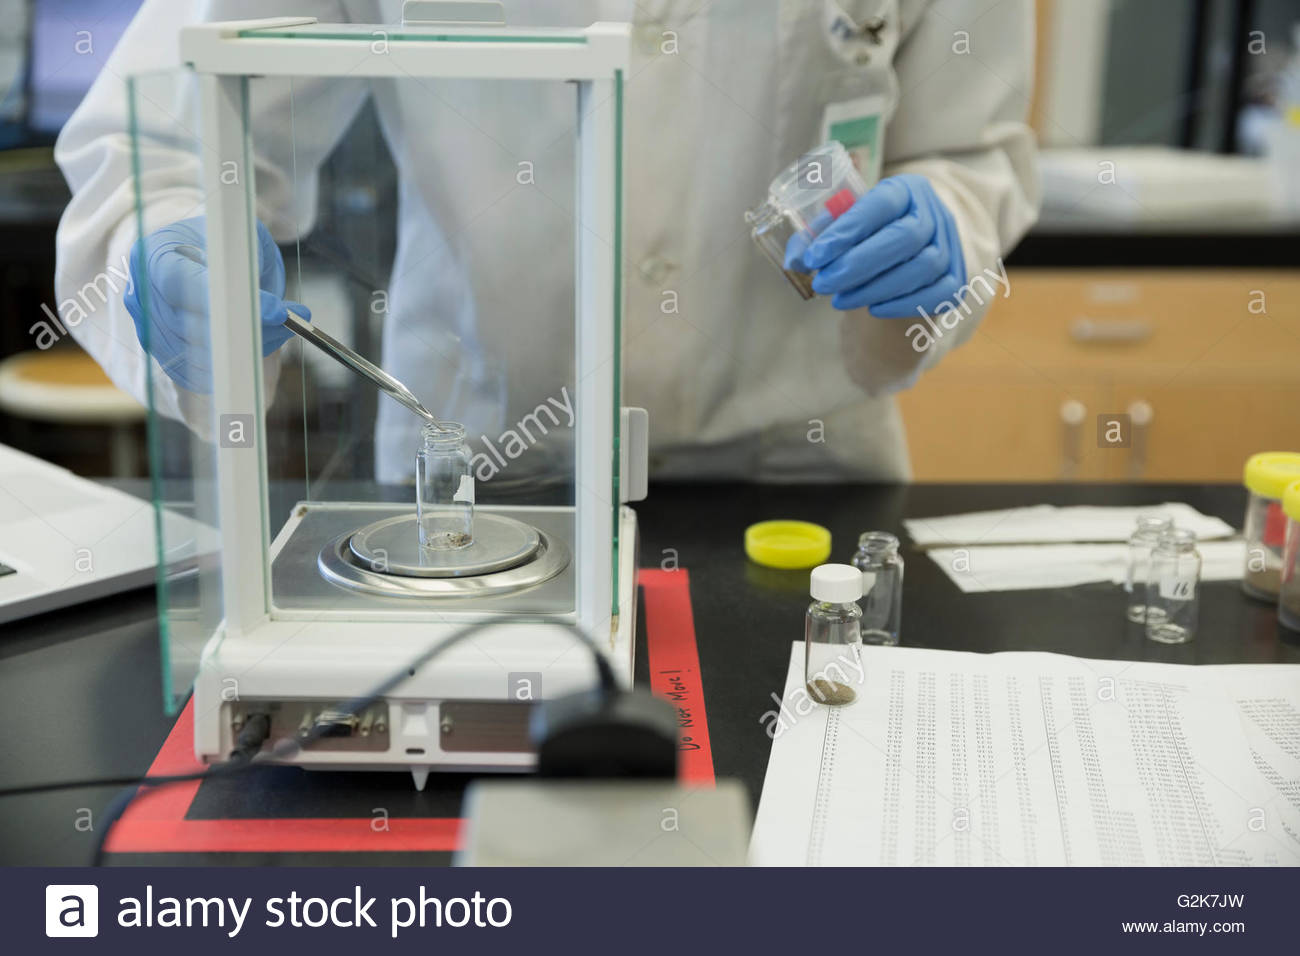 Scientist placing specimen in laboratory scale - Stock Image